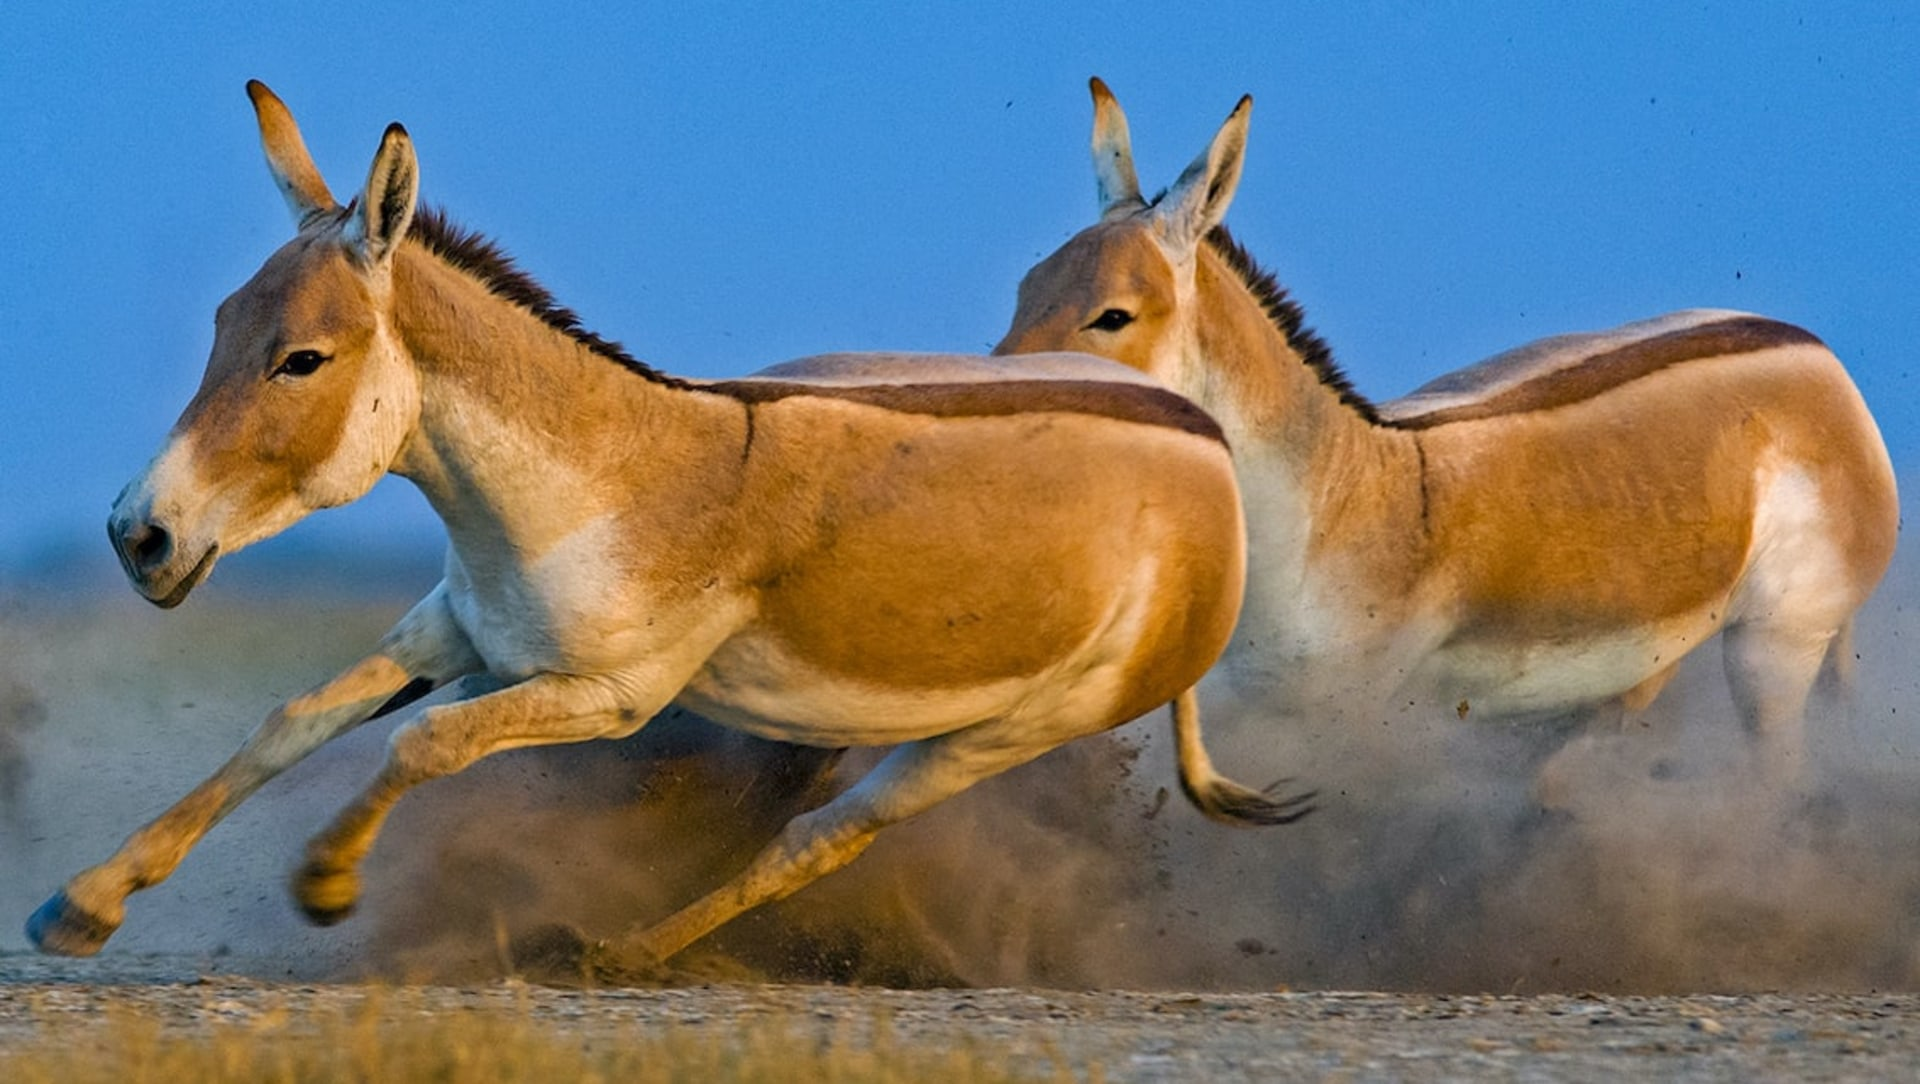 Galloping Through Khur Country: The Asiatic Wild Asses of Gujarat